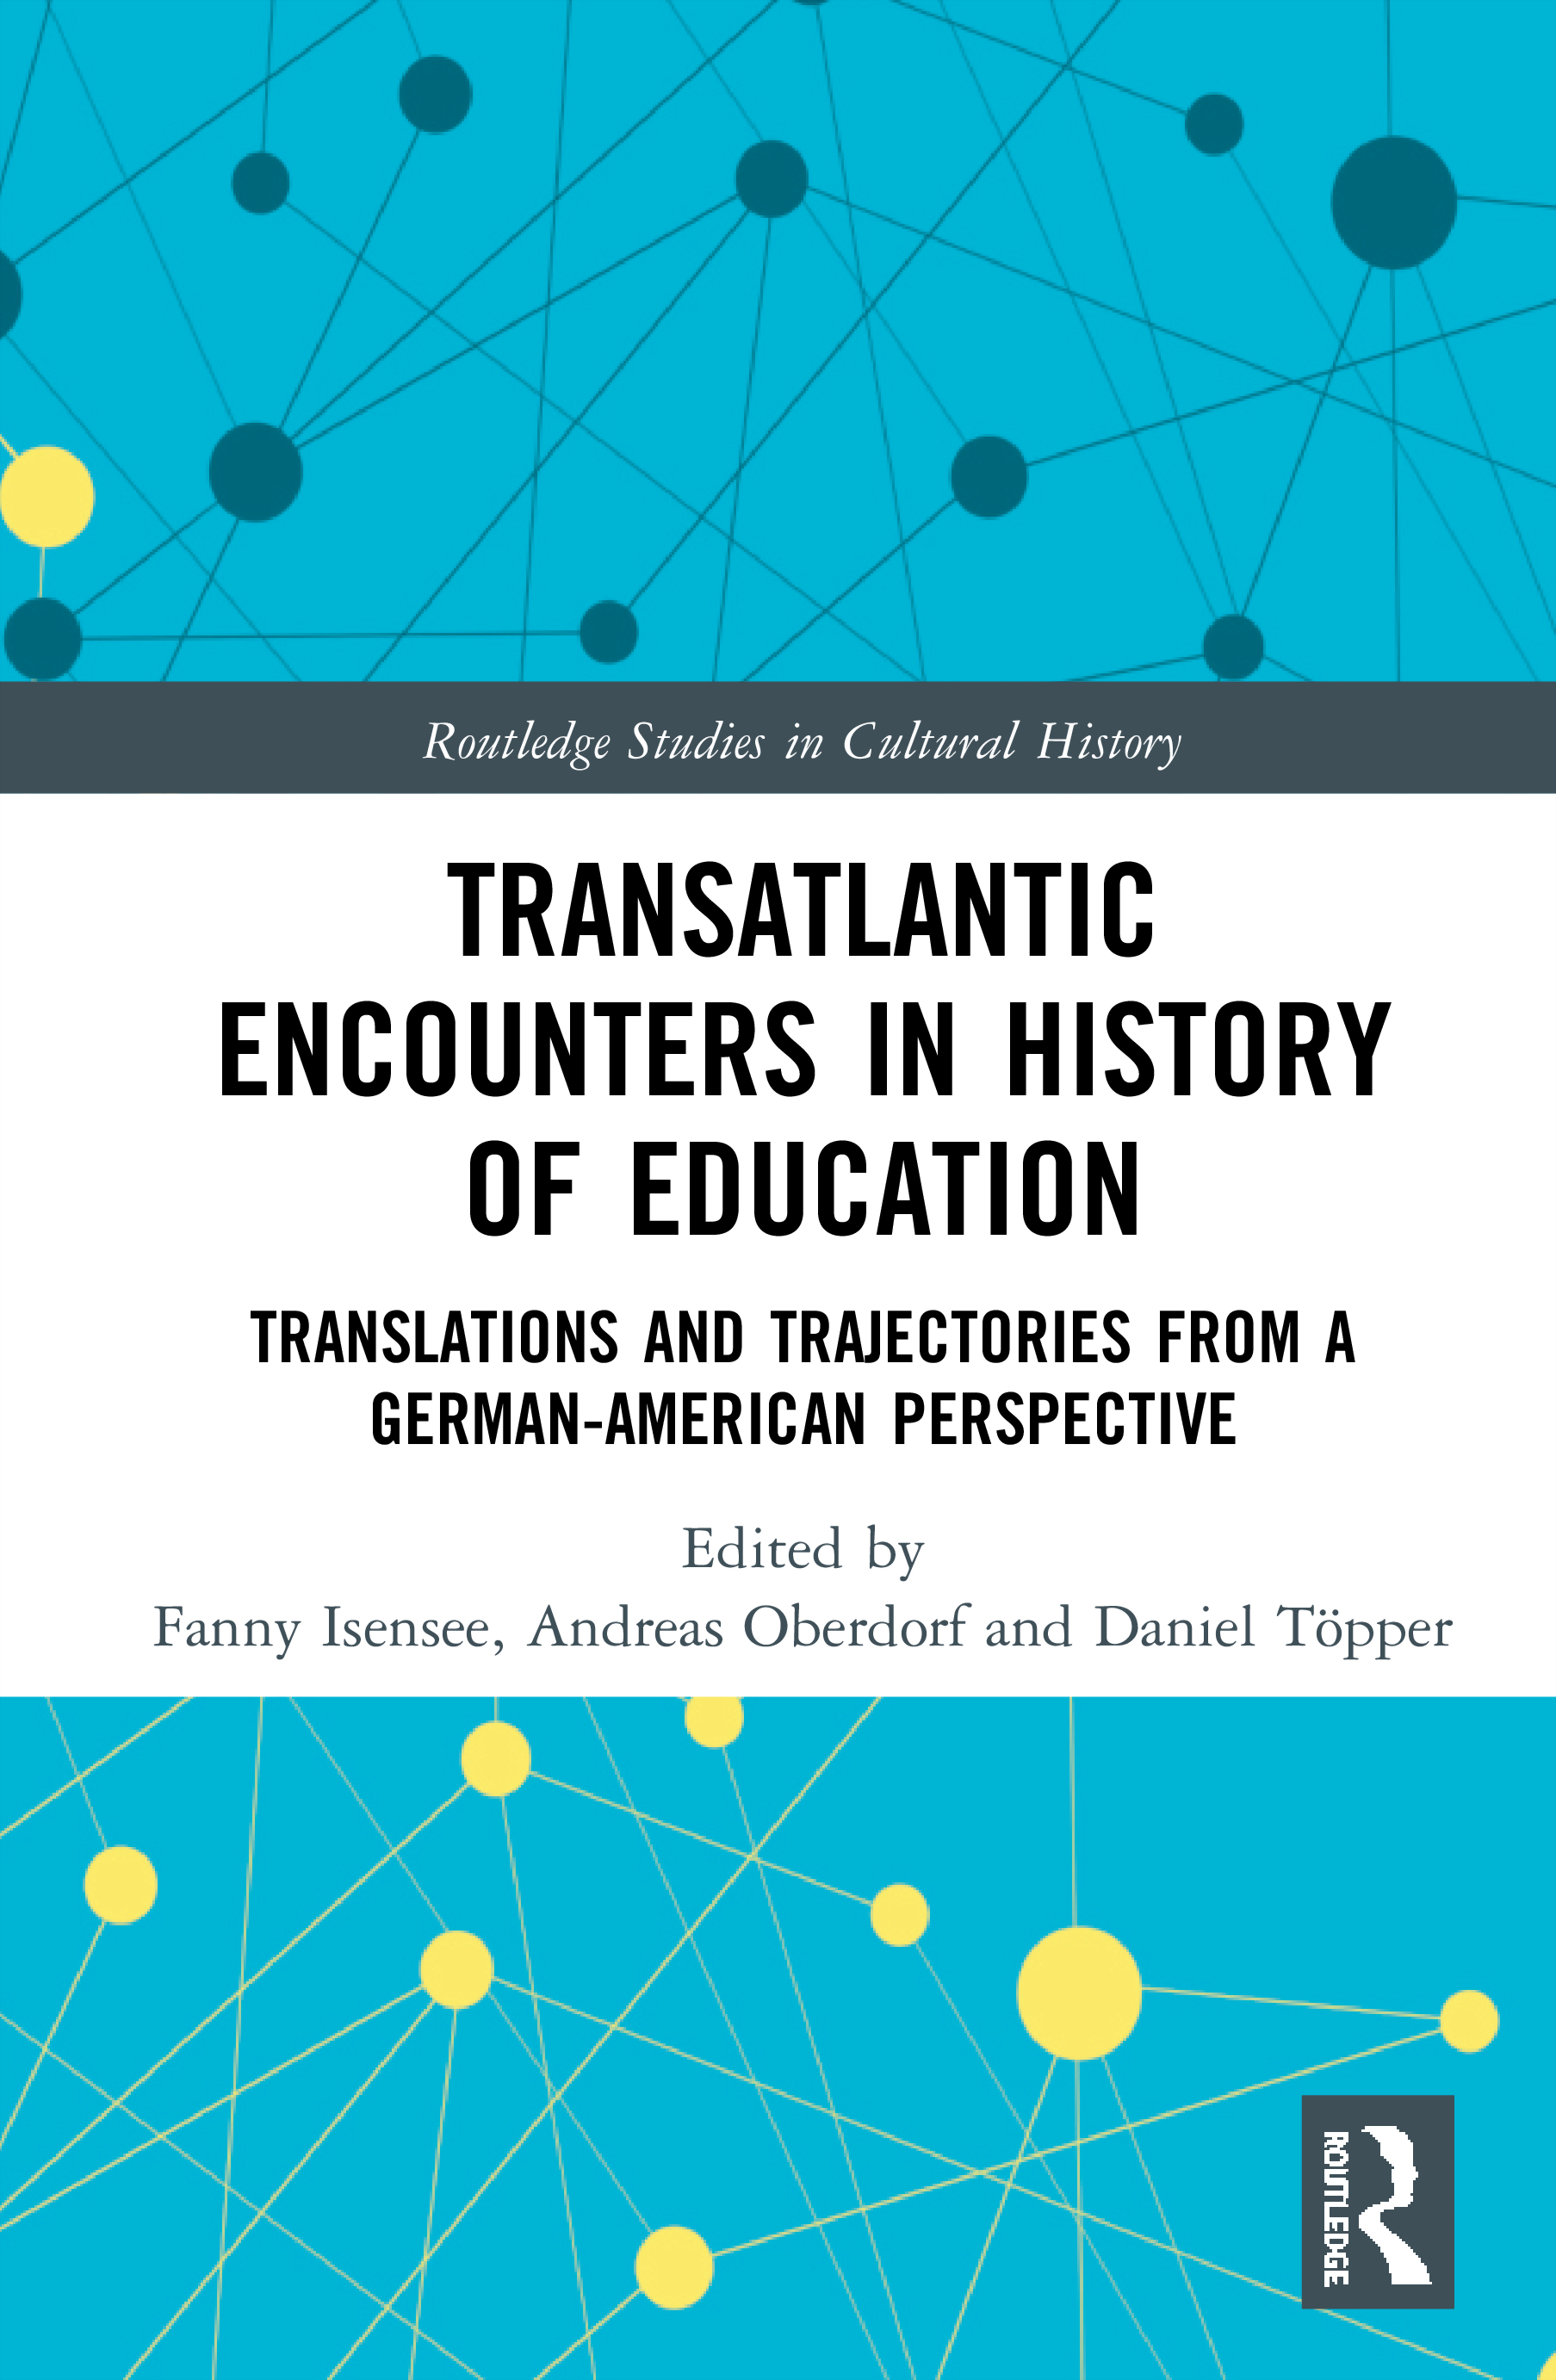 Transatlantic Encounters in History of Education: Translations and Trajectories from a German-American Perspective book cover